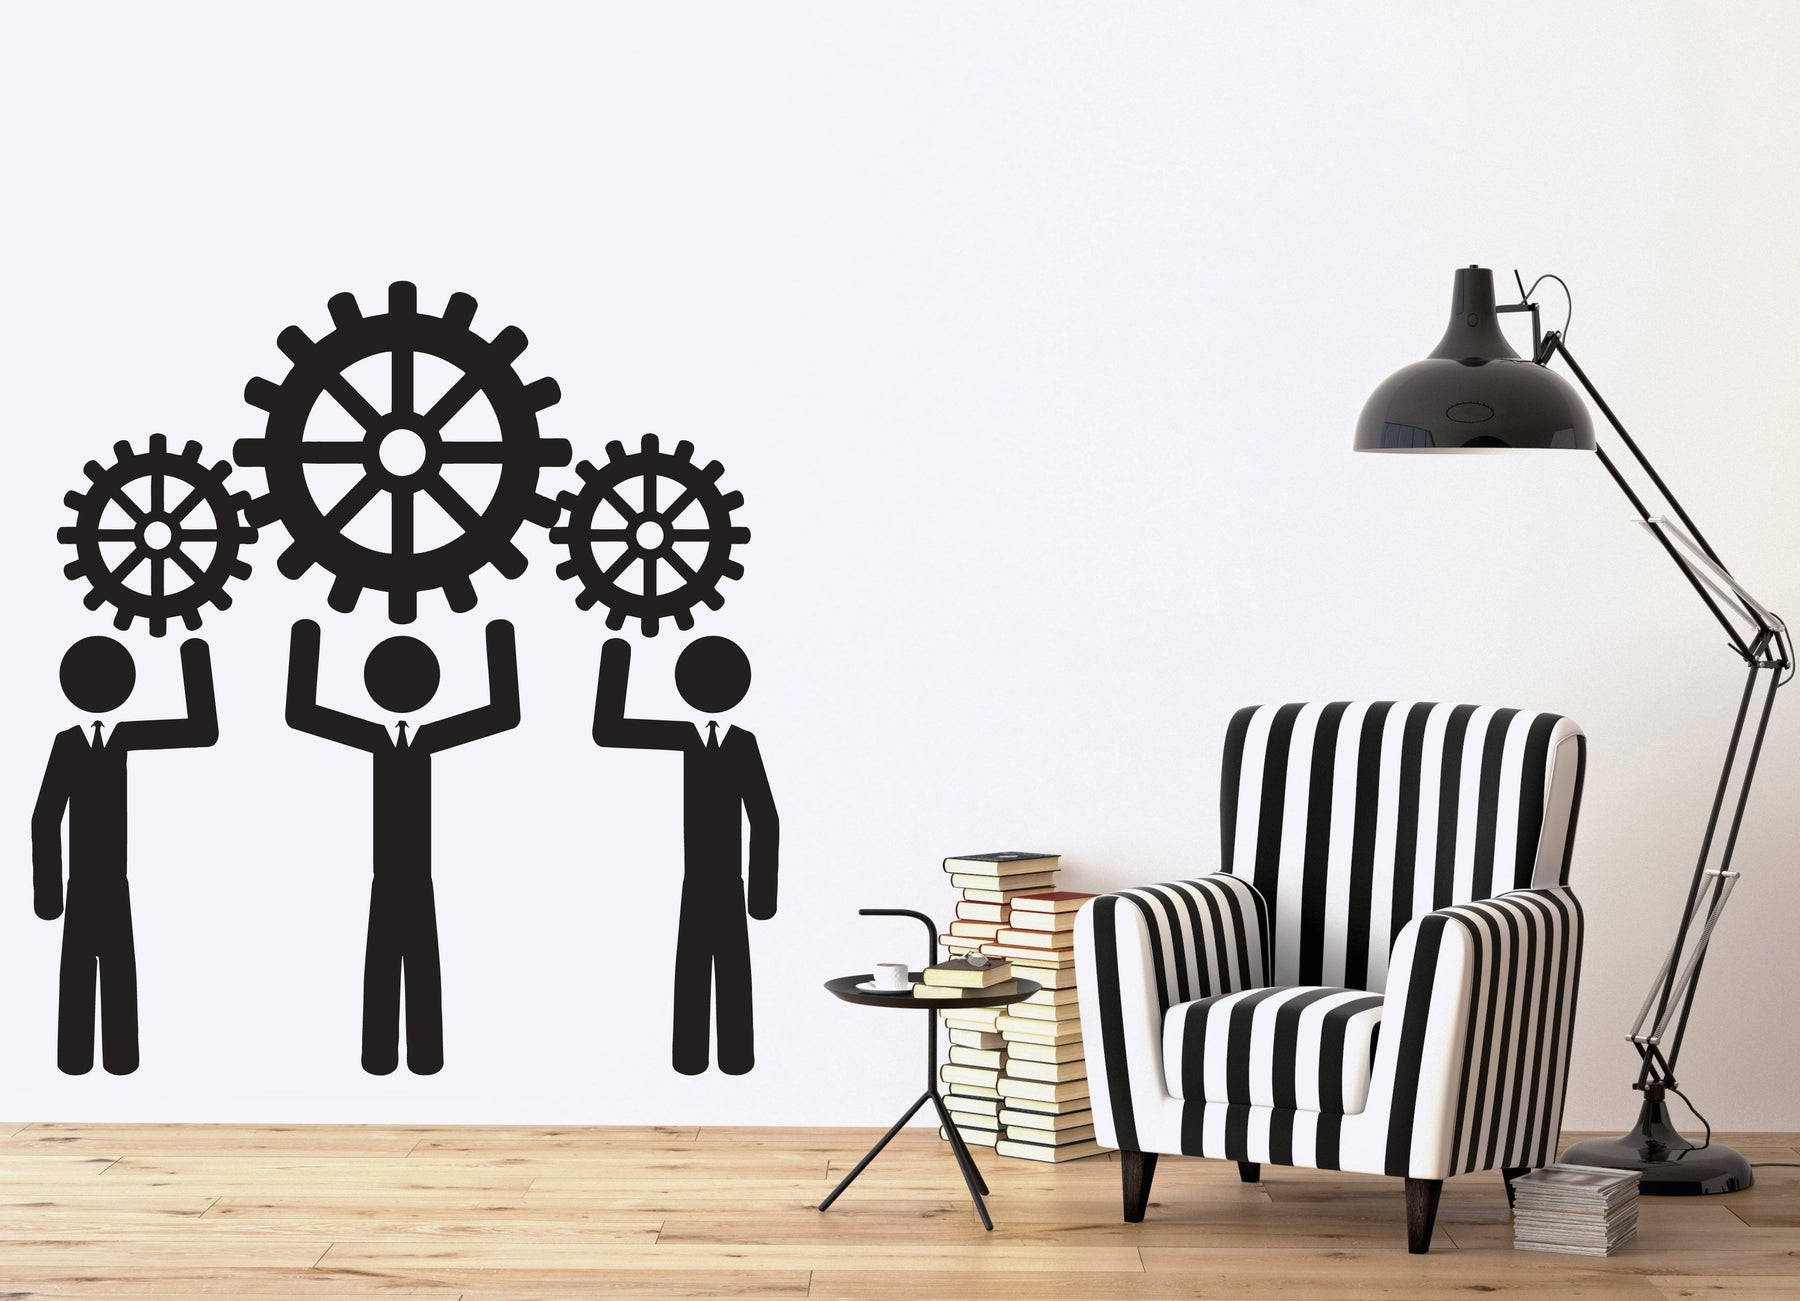 Vinyl Decal Wall Sticker Teamwork Business People Work Thinking Thought Wheel (n555)